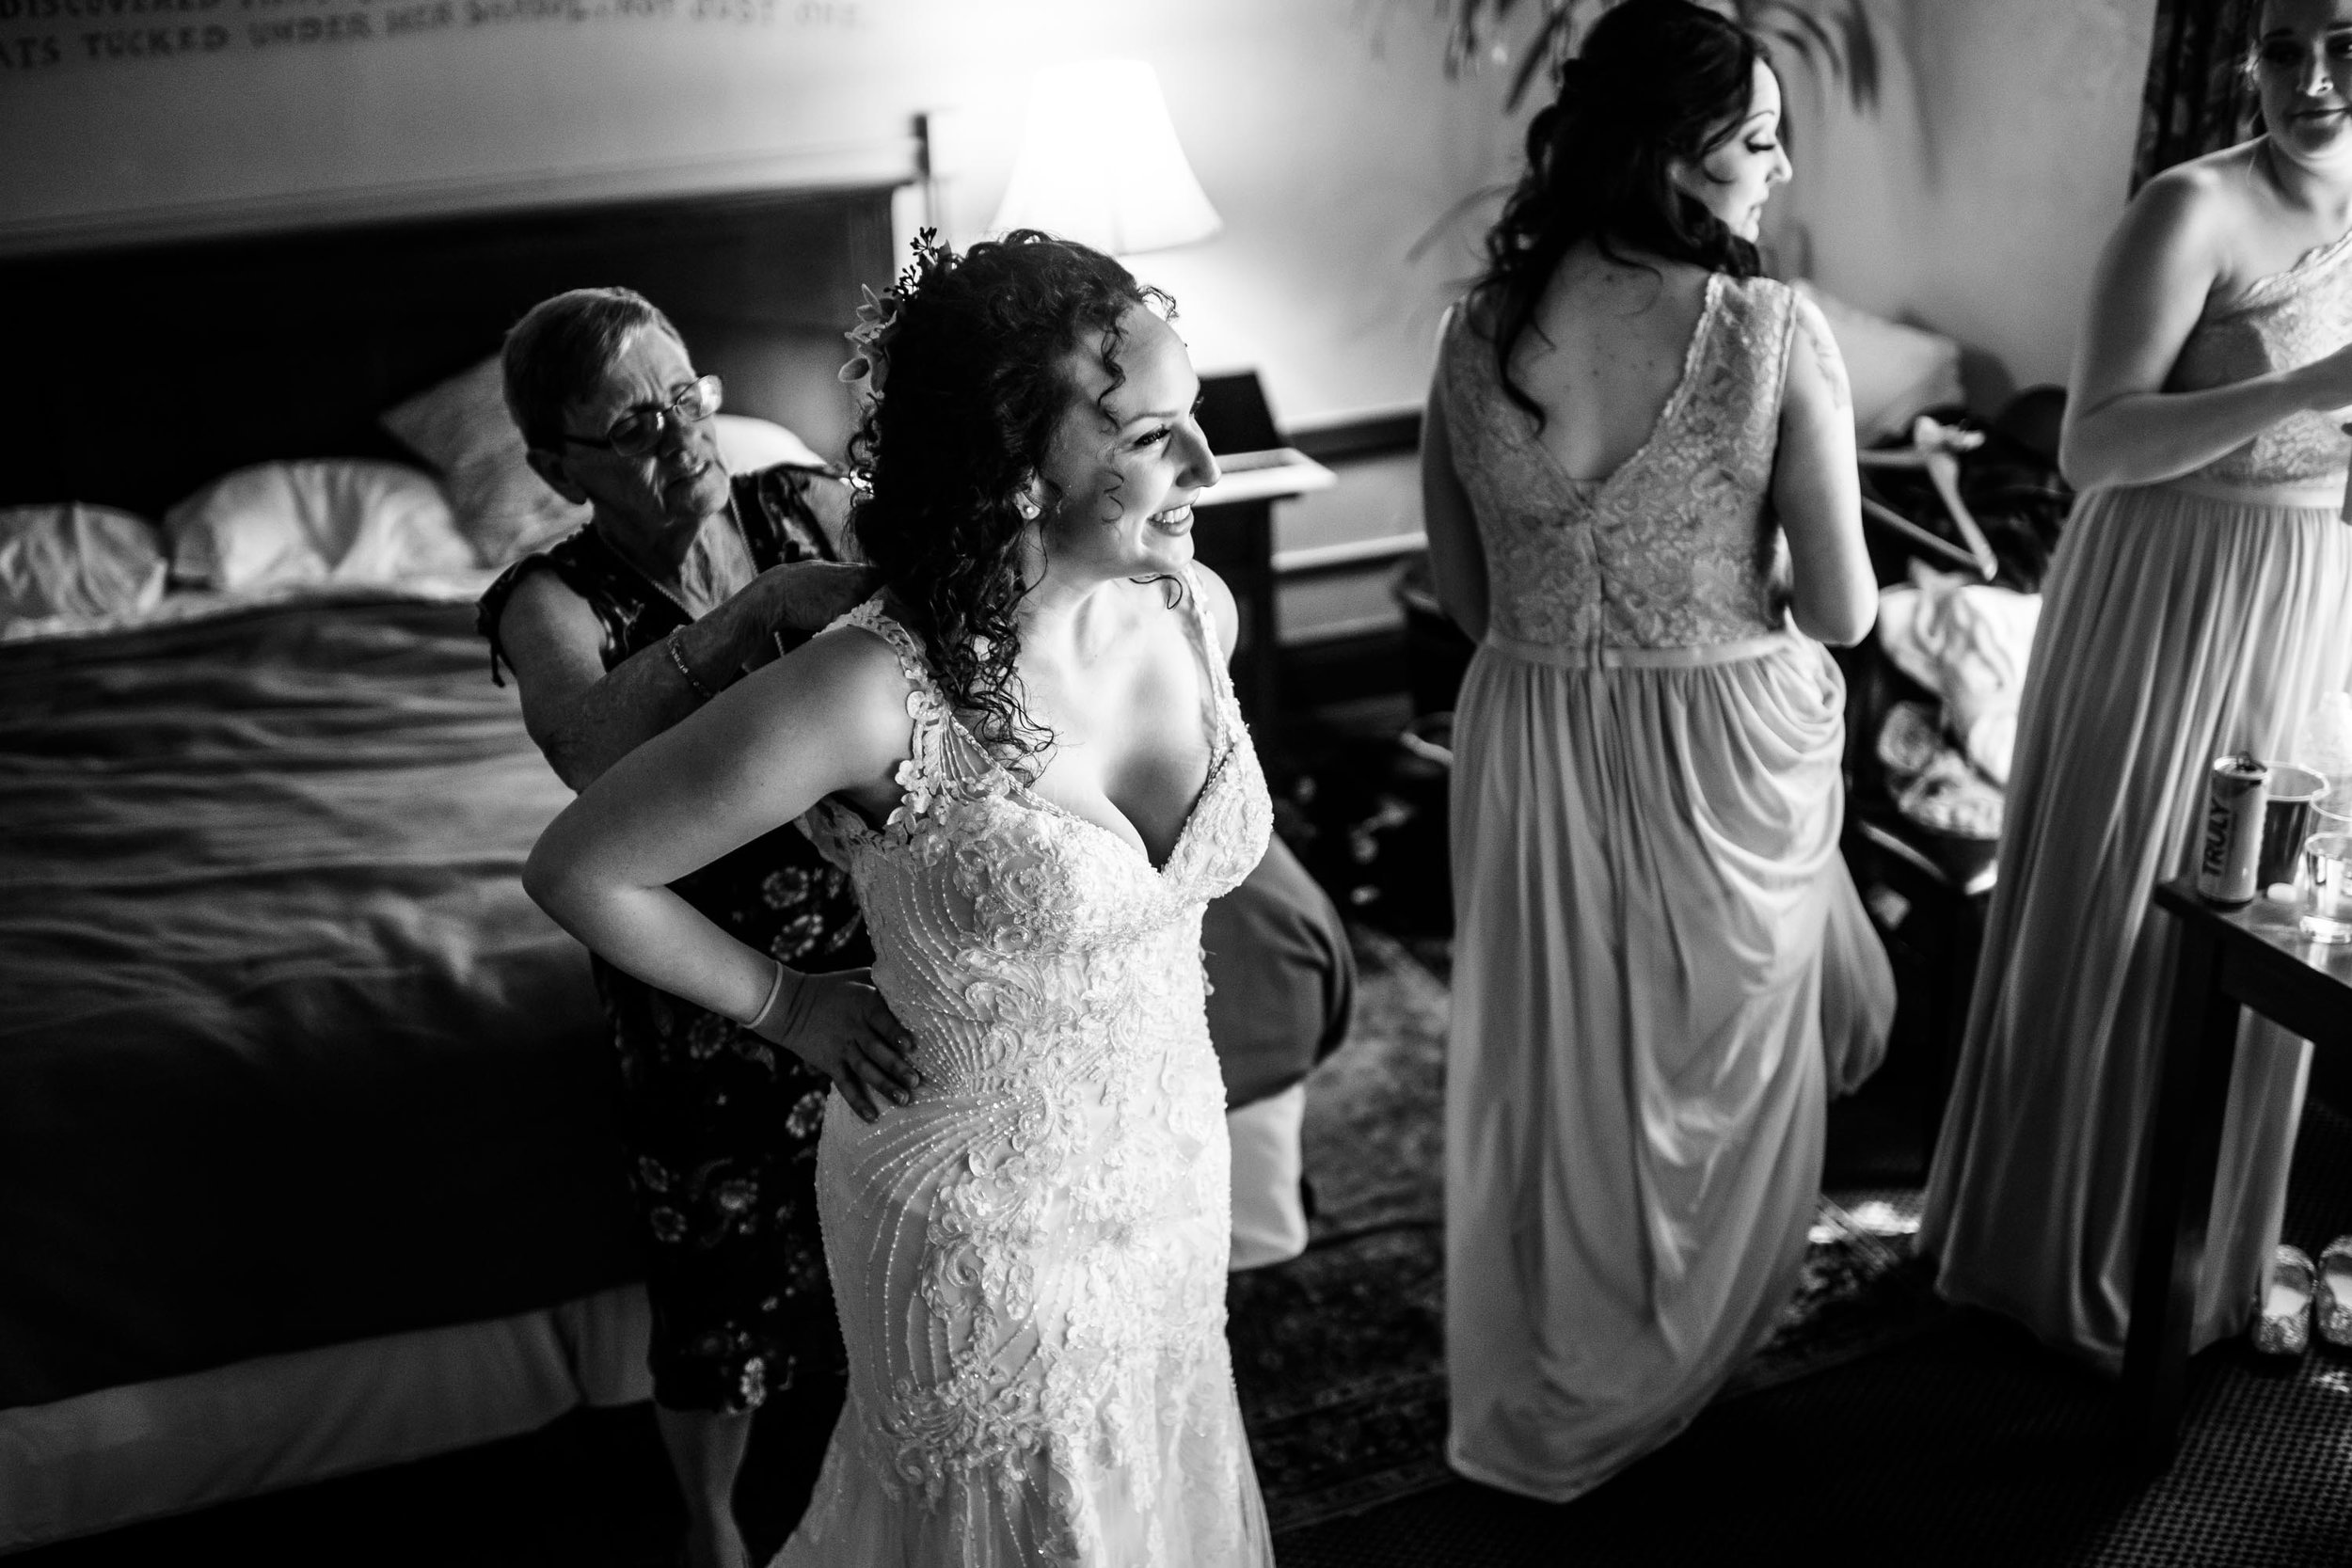 edgefield wedding photos18.jpg